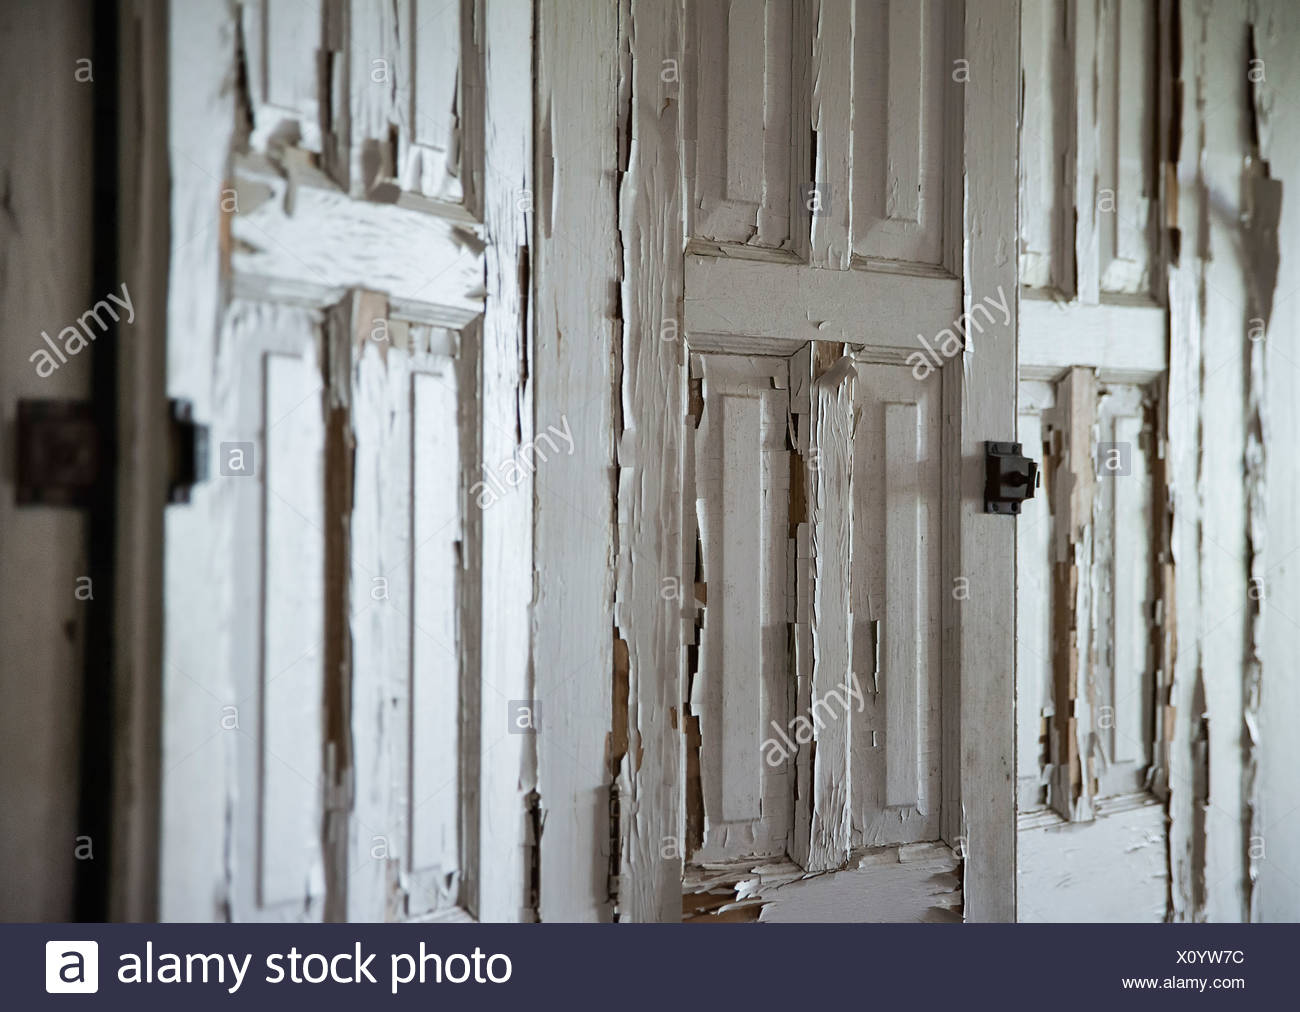 Neglected cabinets with peeling paint. Stock Photo